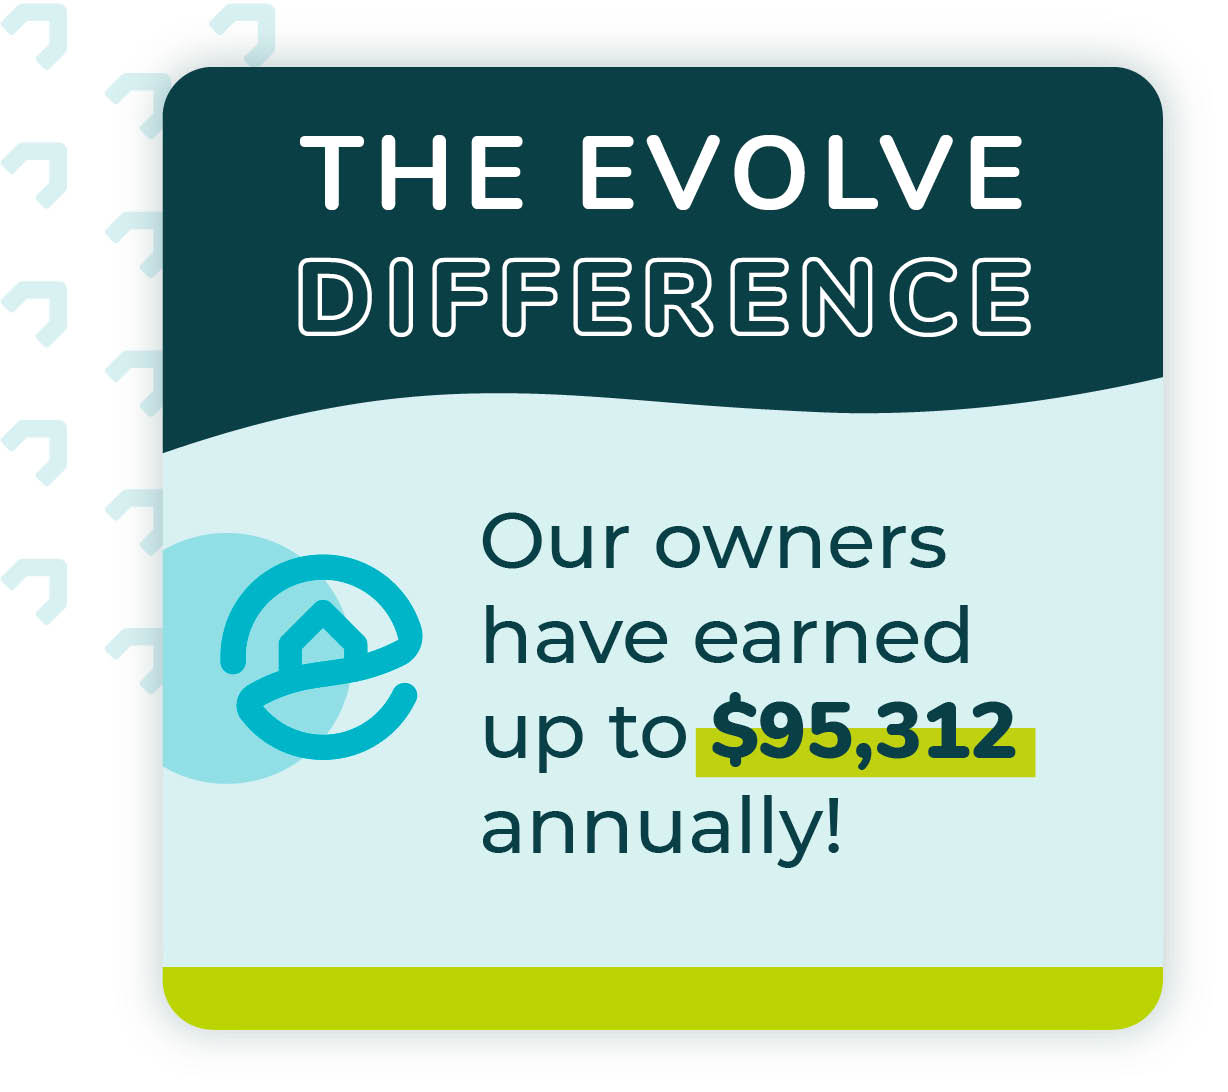 Murrells Inlet, South Carolina Evolve Difference Graphic